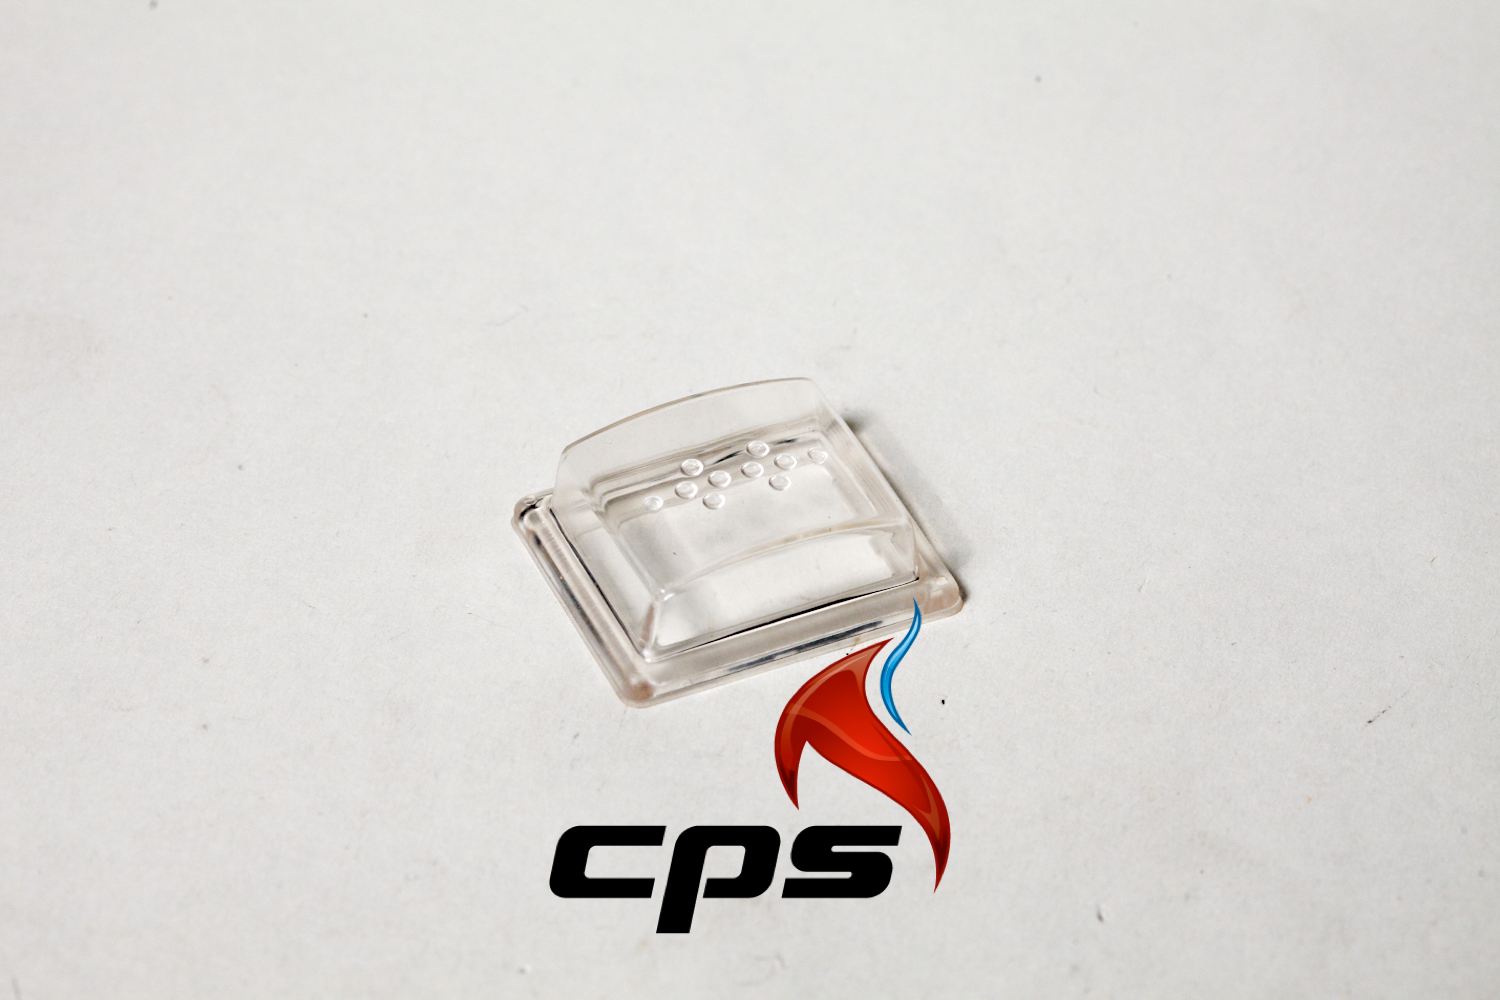 0400291 - Roundup Food Equipment - CPS